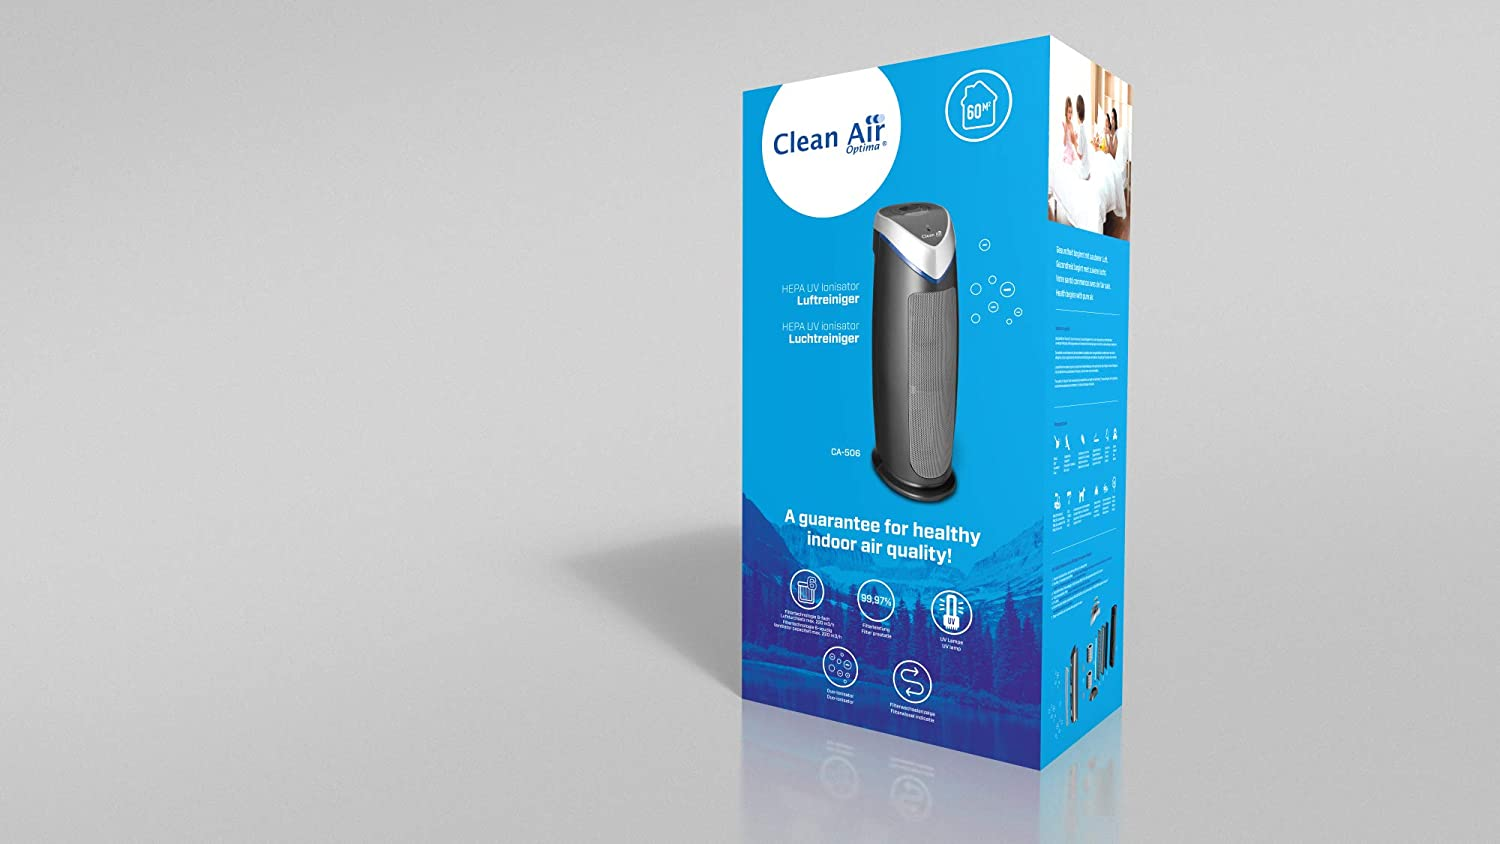 Active Carbon TiO2 Ioniser 150 m/³ Clean Air Optima CA-506 UV HEPA Air Purifier up to 60 m/² 6-Stage Ozone-Free Filtration Technology